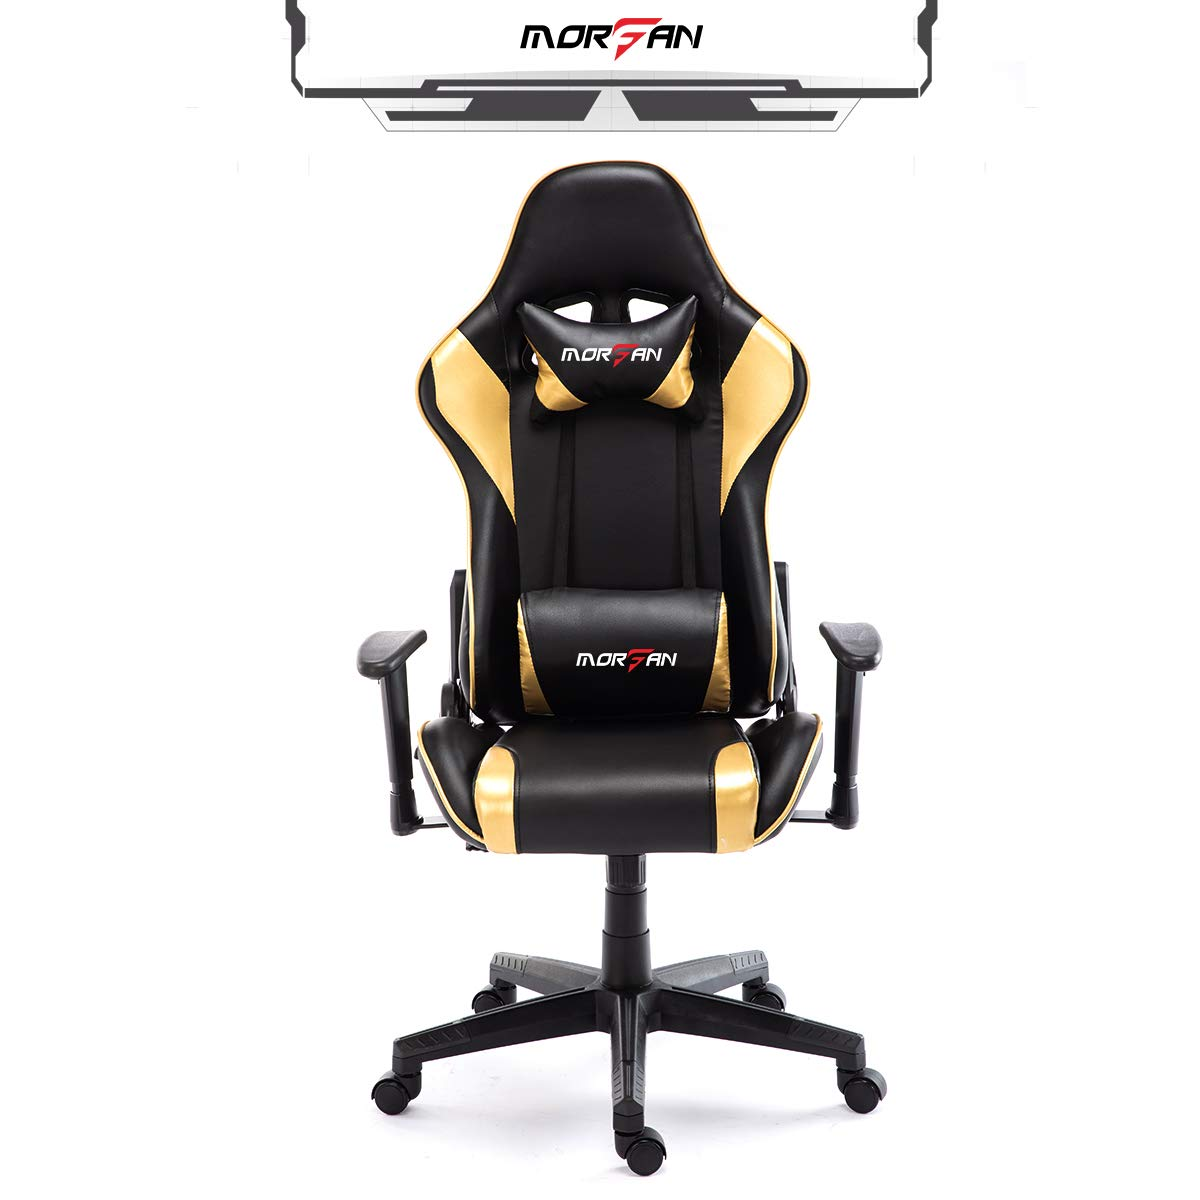 Morfan Swivel Office Gaming Chair PU Leather Racing Style Computer Chair Lumbar Pillow with Massage F Series Black Gold